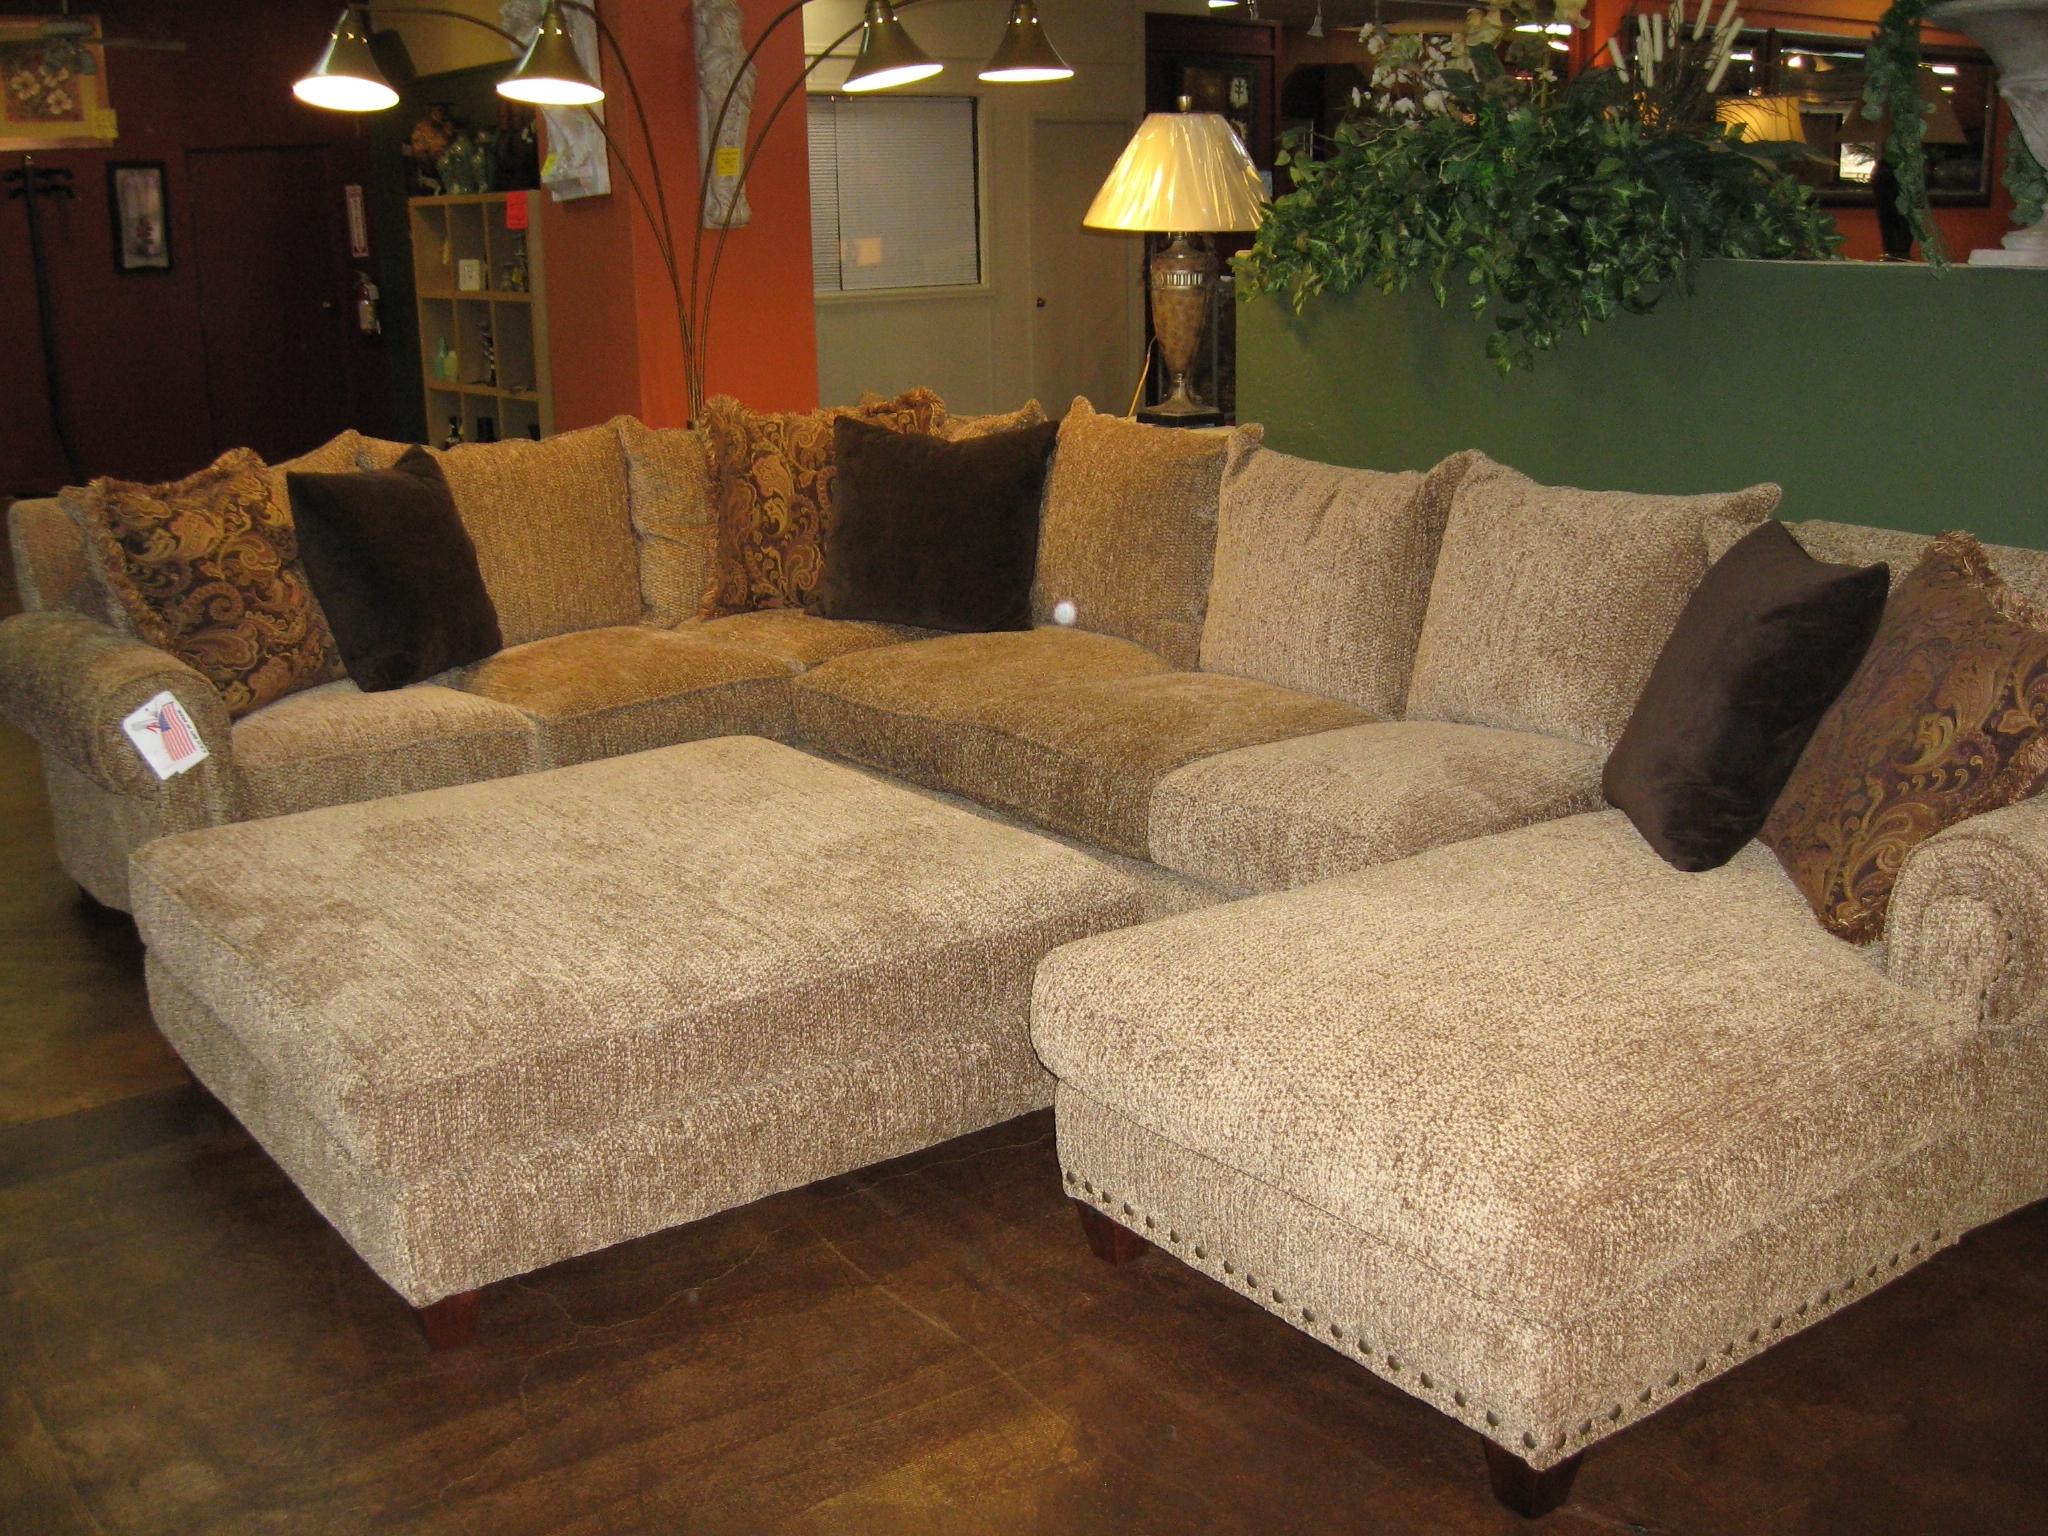 Preferred Elegant Large Sectional Sofa With Ottoman 52 With Additional Pertaining To Sectional Couches With Large Ottoman (View 12 of 20)